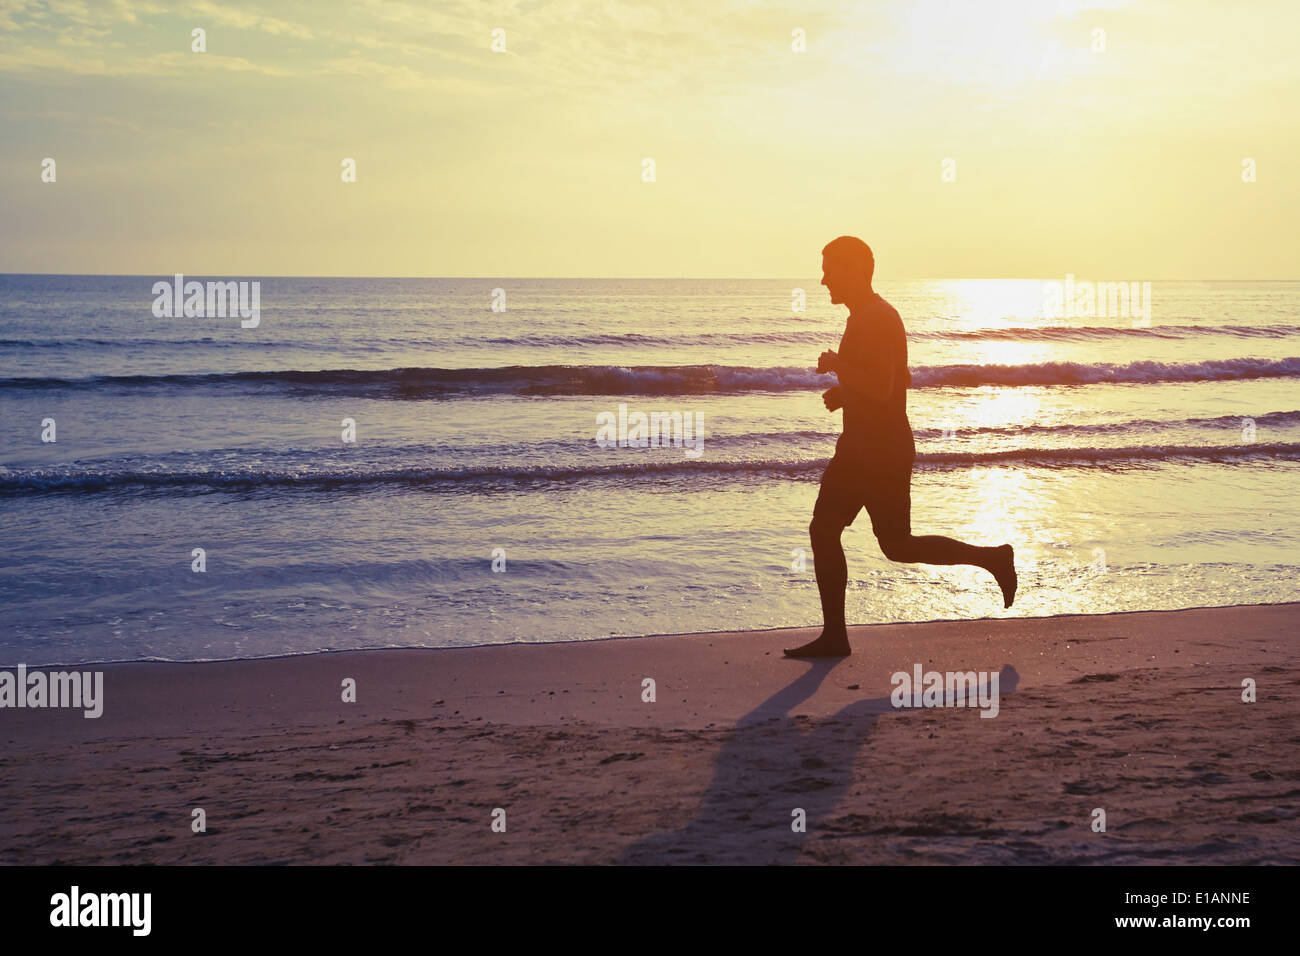 Mode de vie sain, silhouette de runner sur la plage Photo Stock